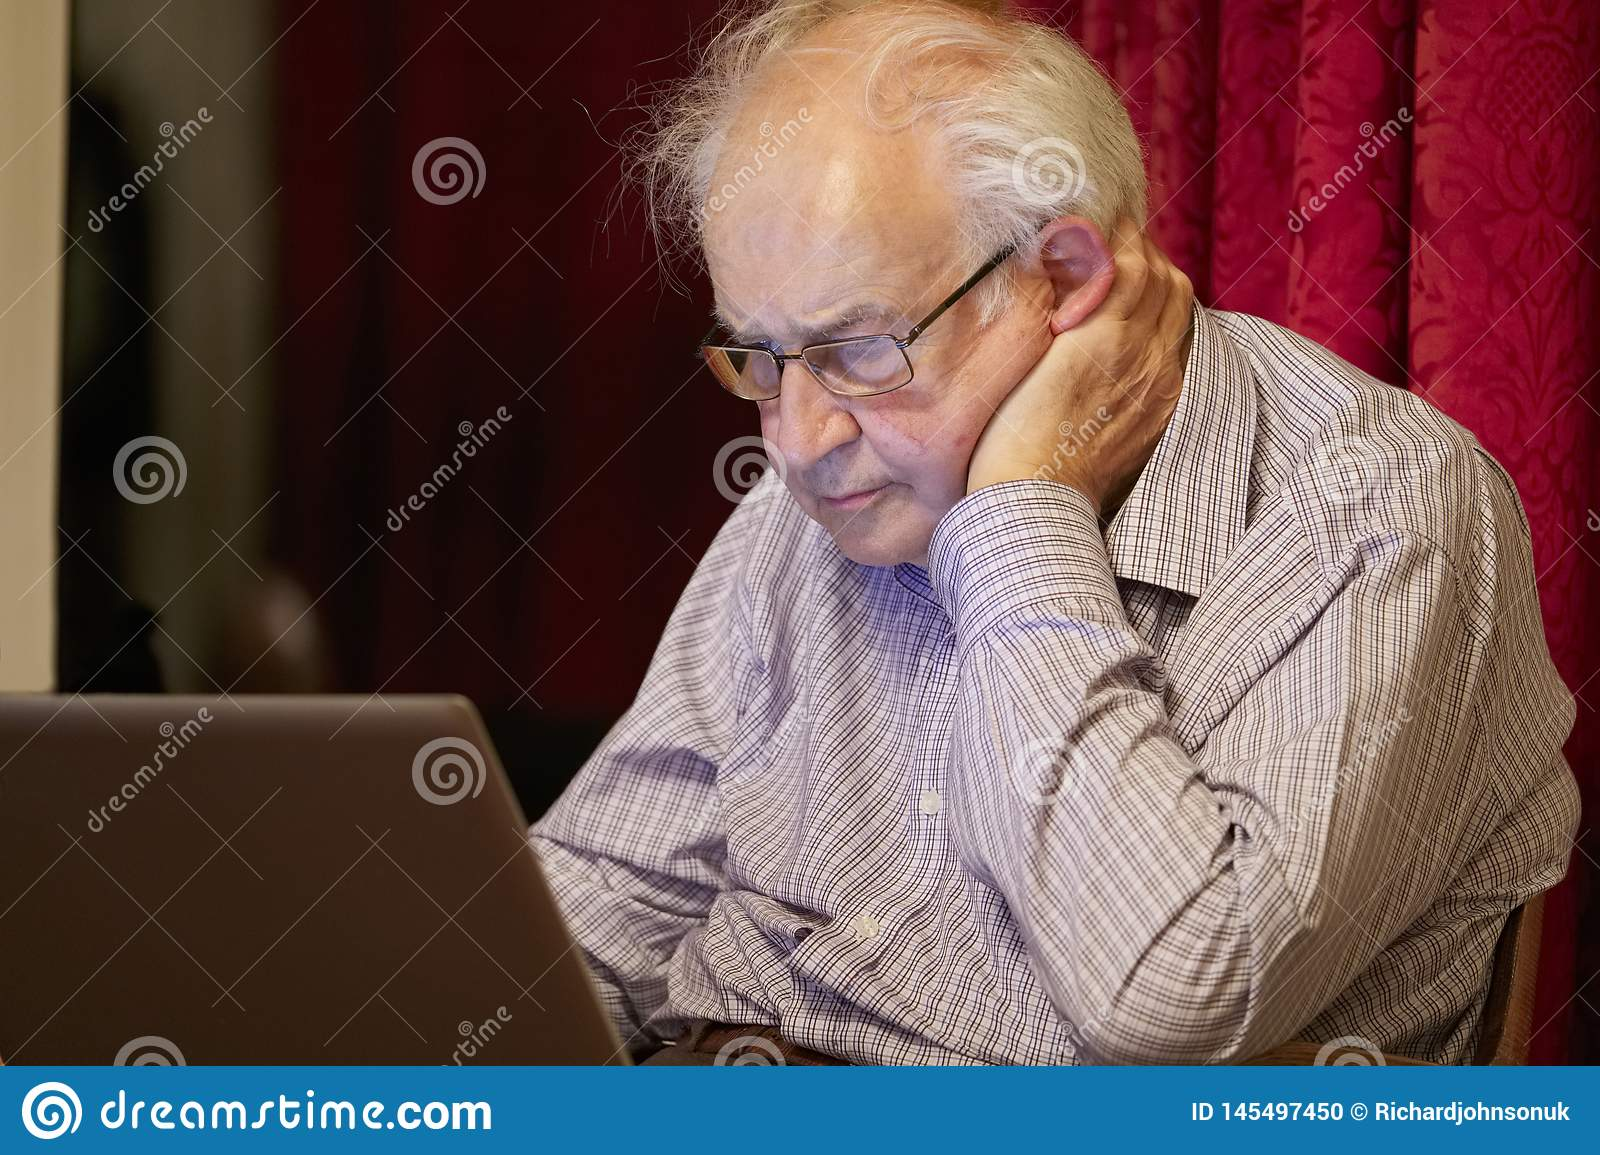 Old elderly senior person learning computer and online internet skills to prevent fraud